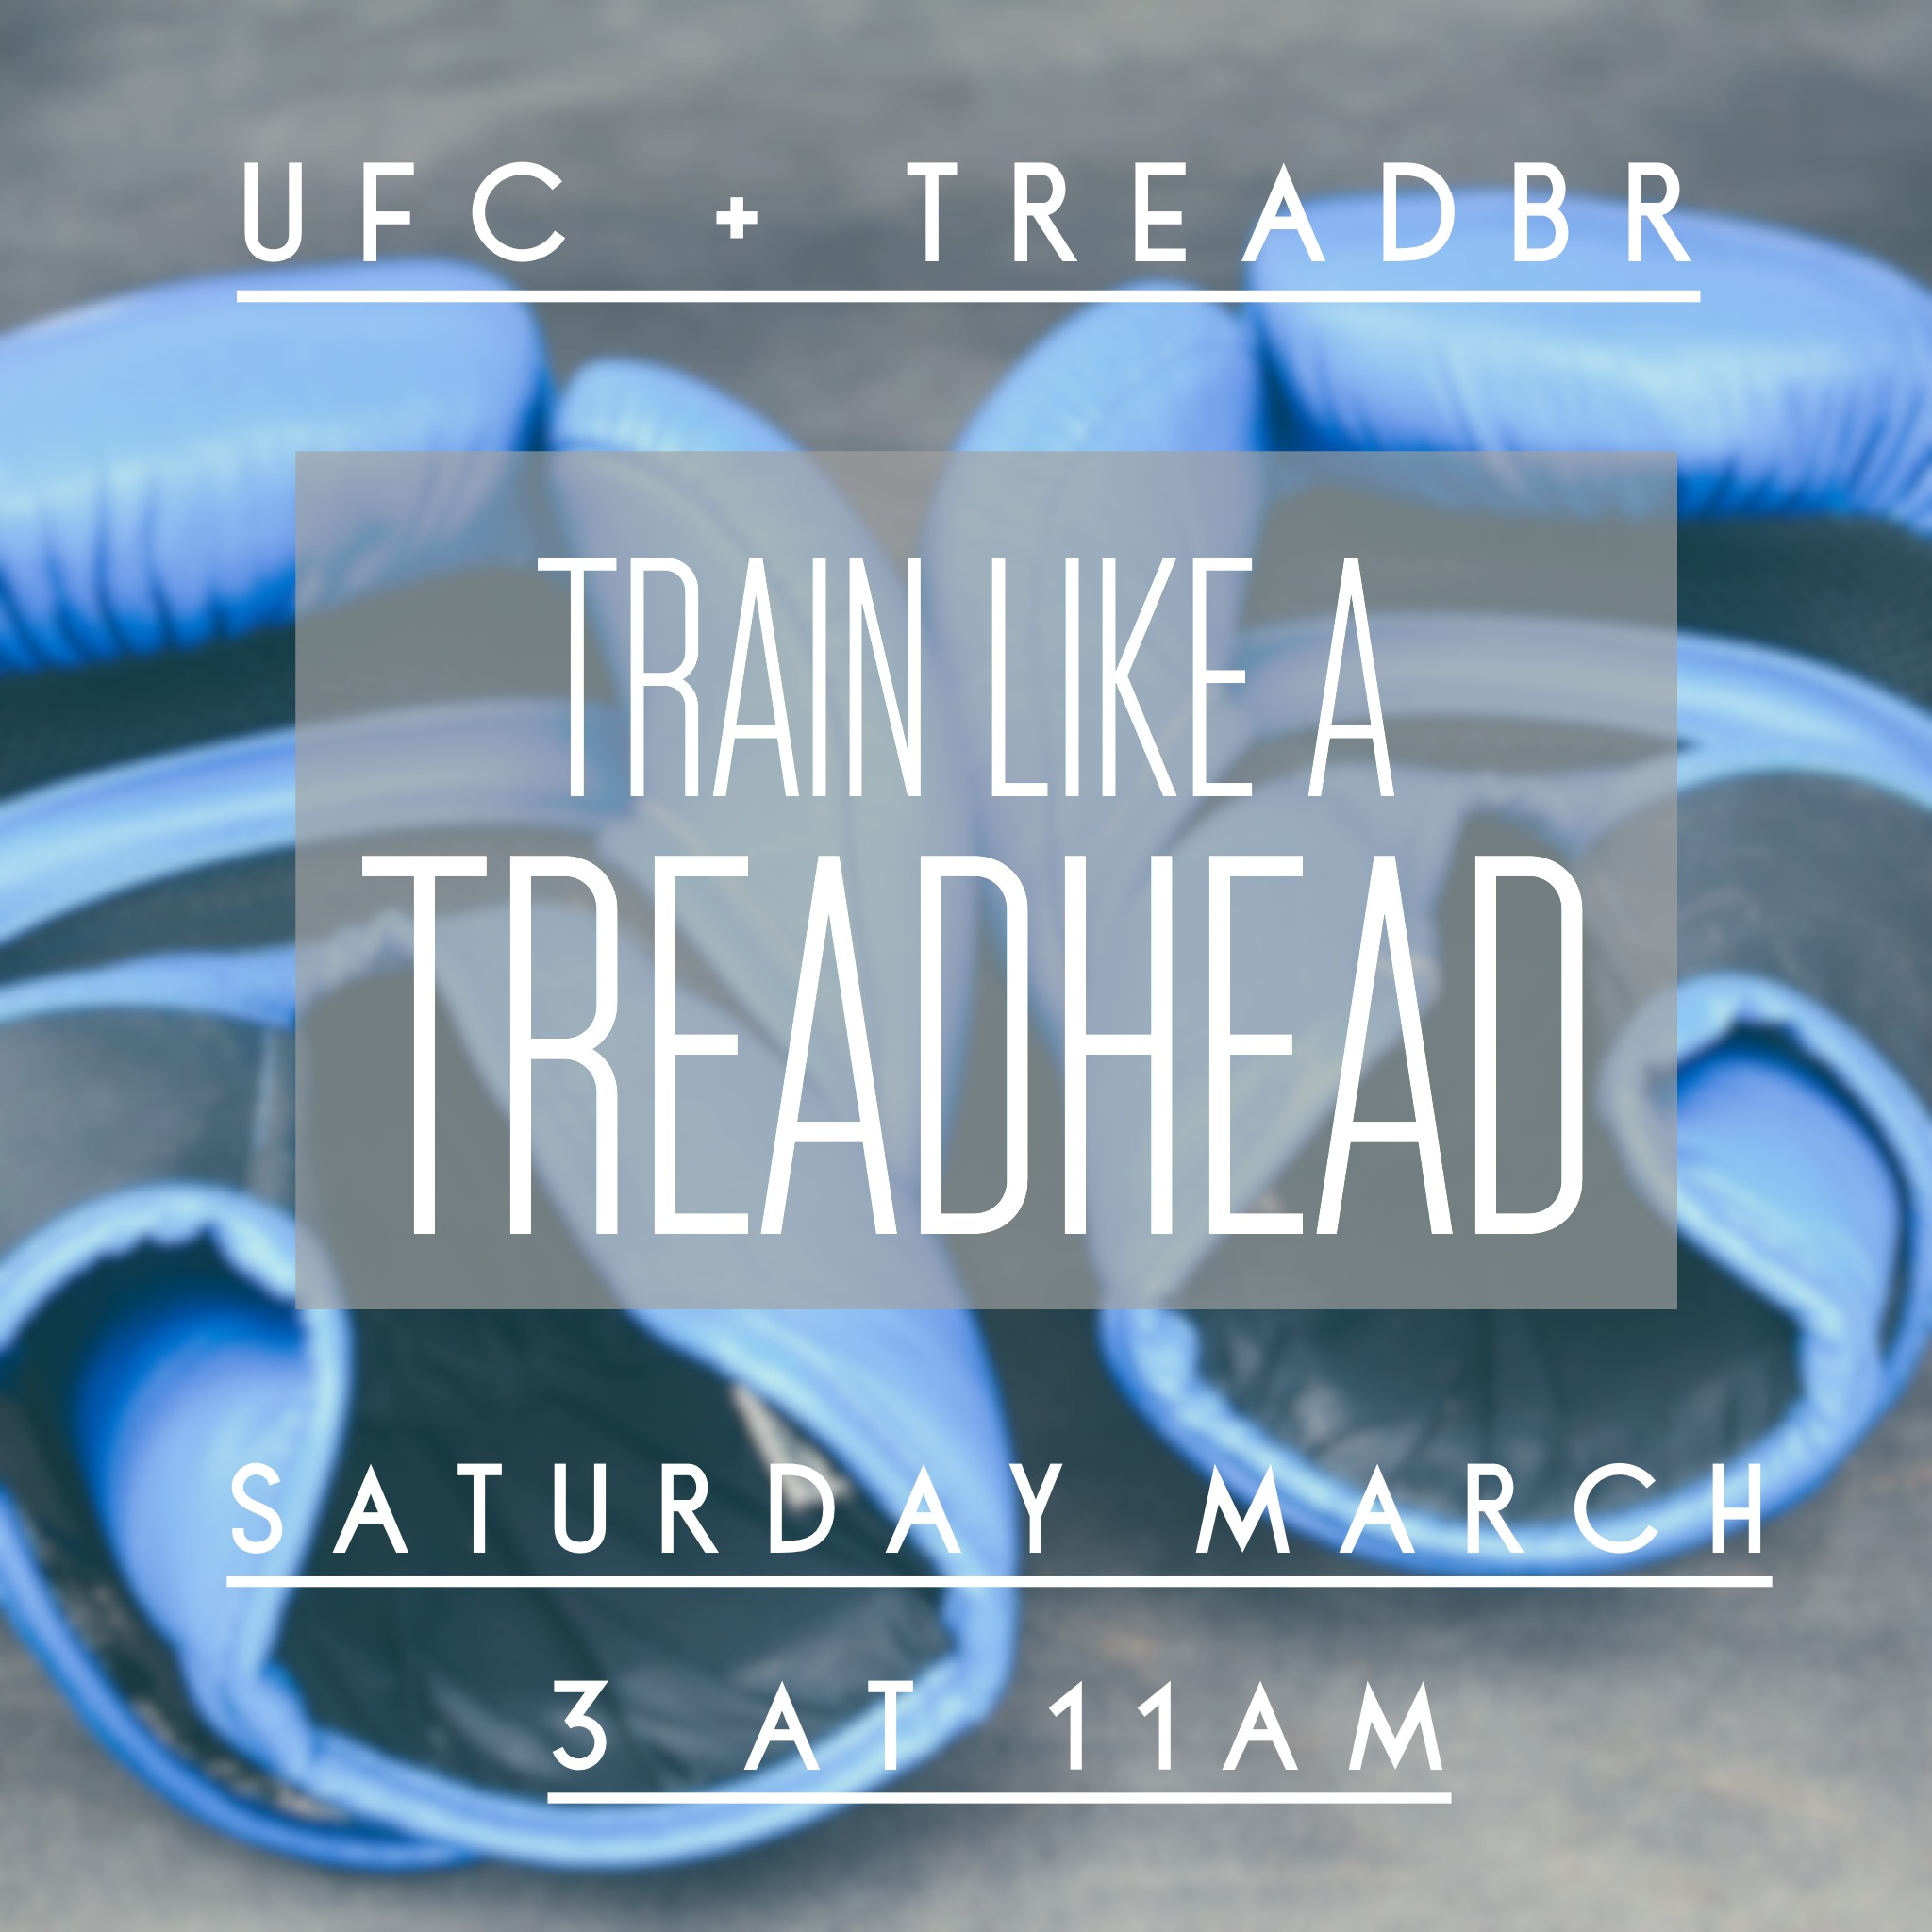 Join us at TreadBR! We're partnering with our neighbors at UFC to bring you the ultimate boxing and treadmill based workout.